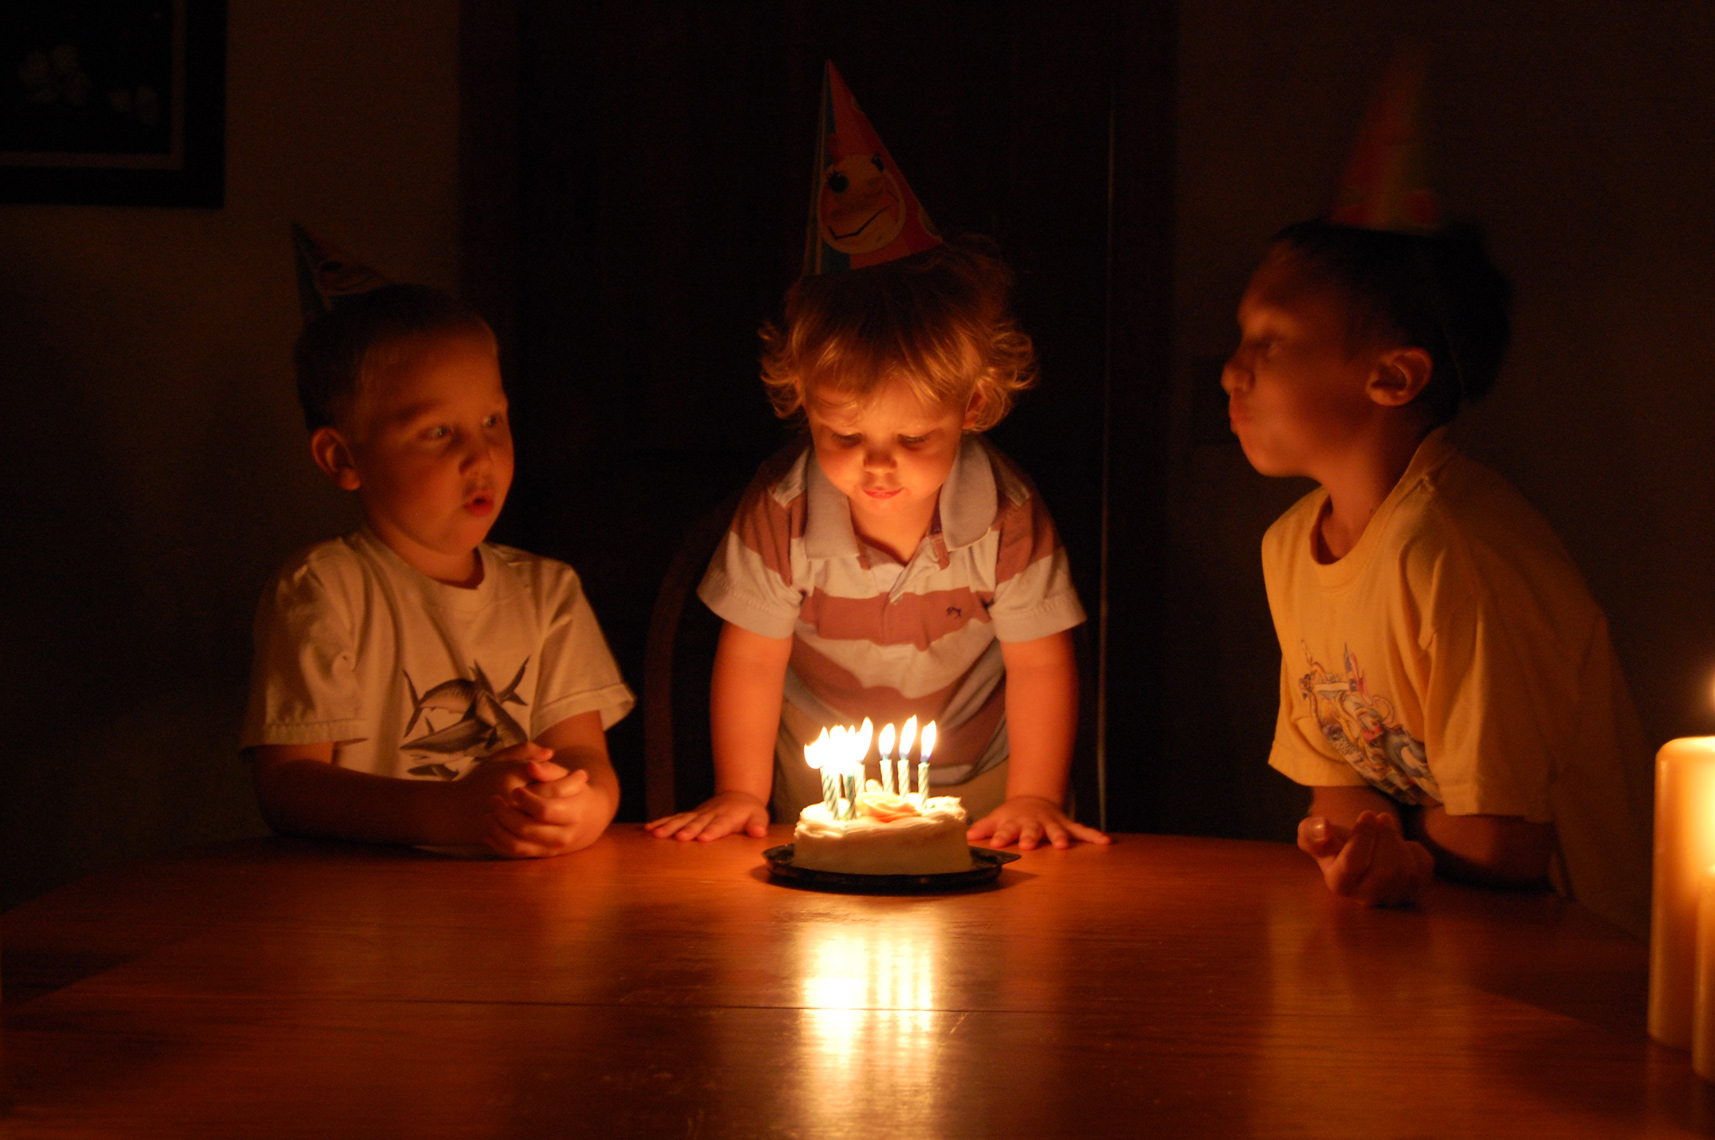 DSC_0067-#20-birthday-cake-candles.jpg